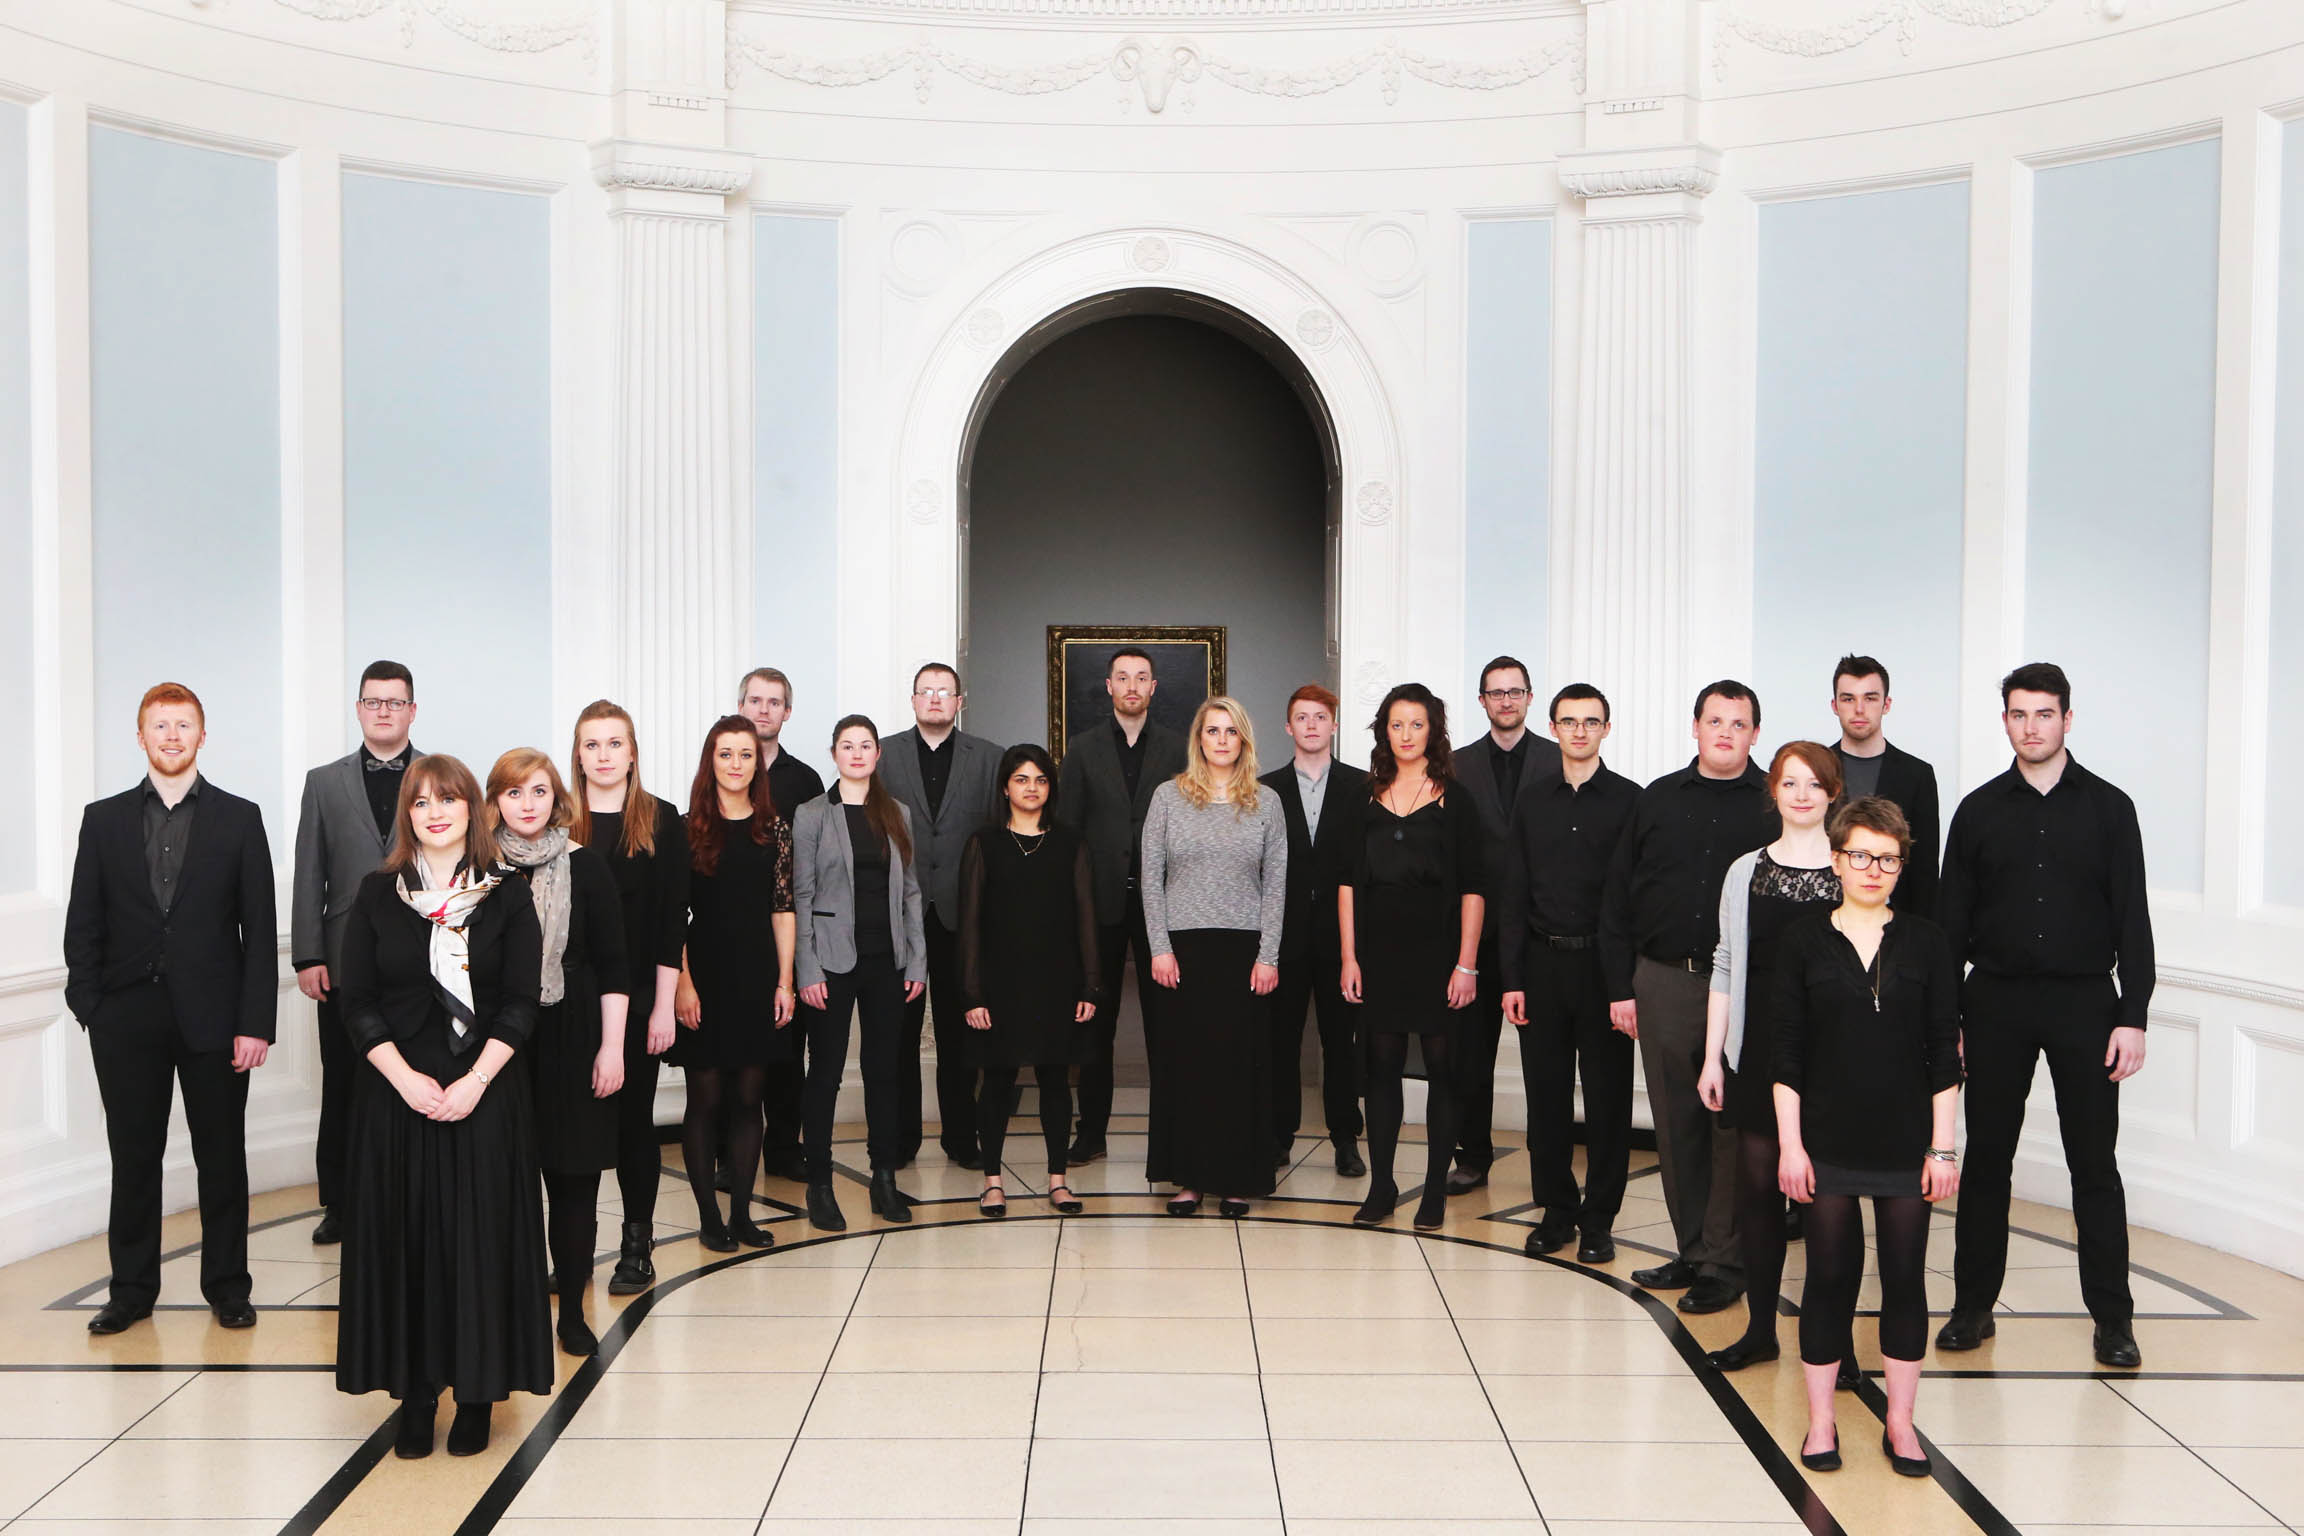 Irish Youth Choir to perform Oceans Apart